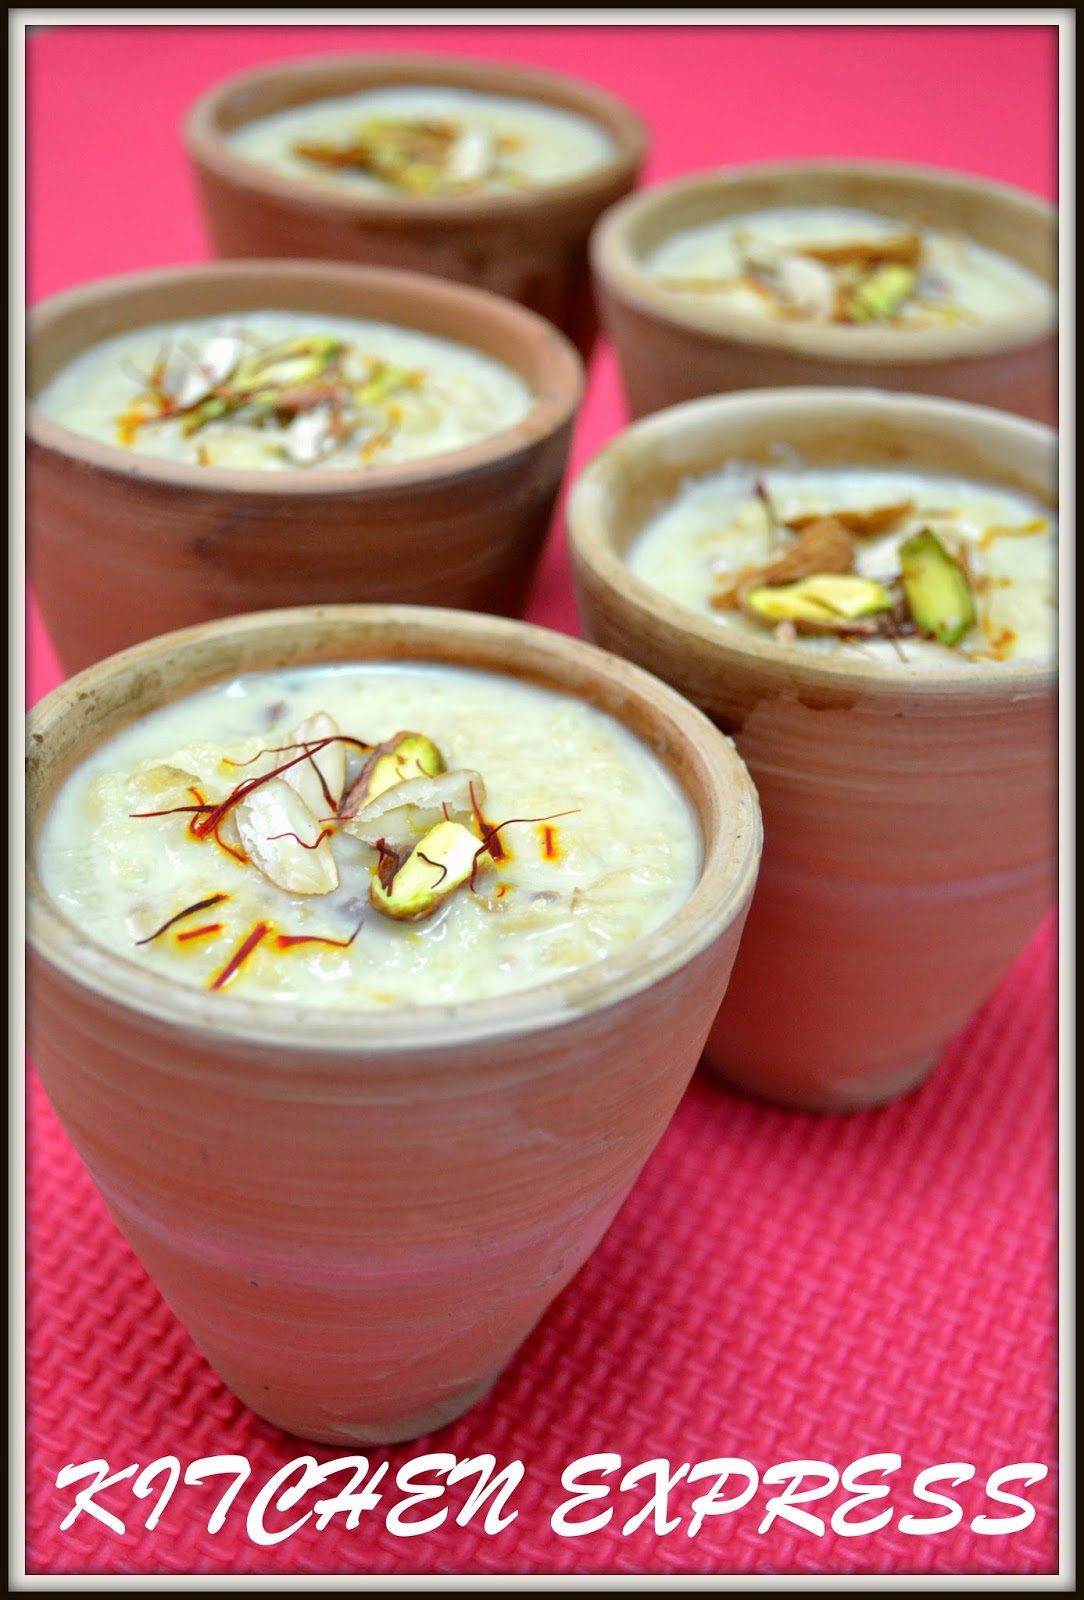 apple rabdi (evaporated milk with apple pudding)